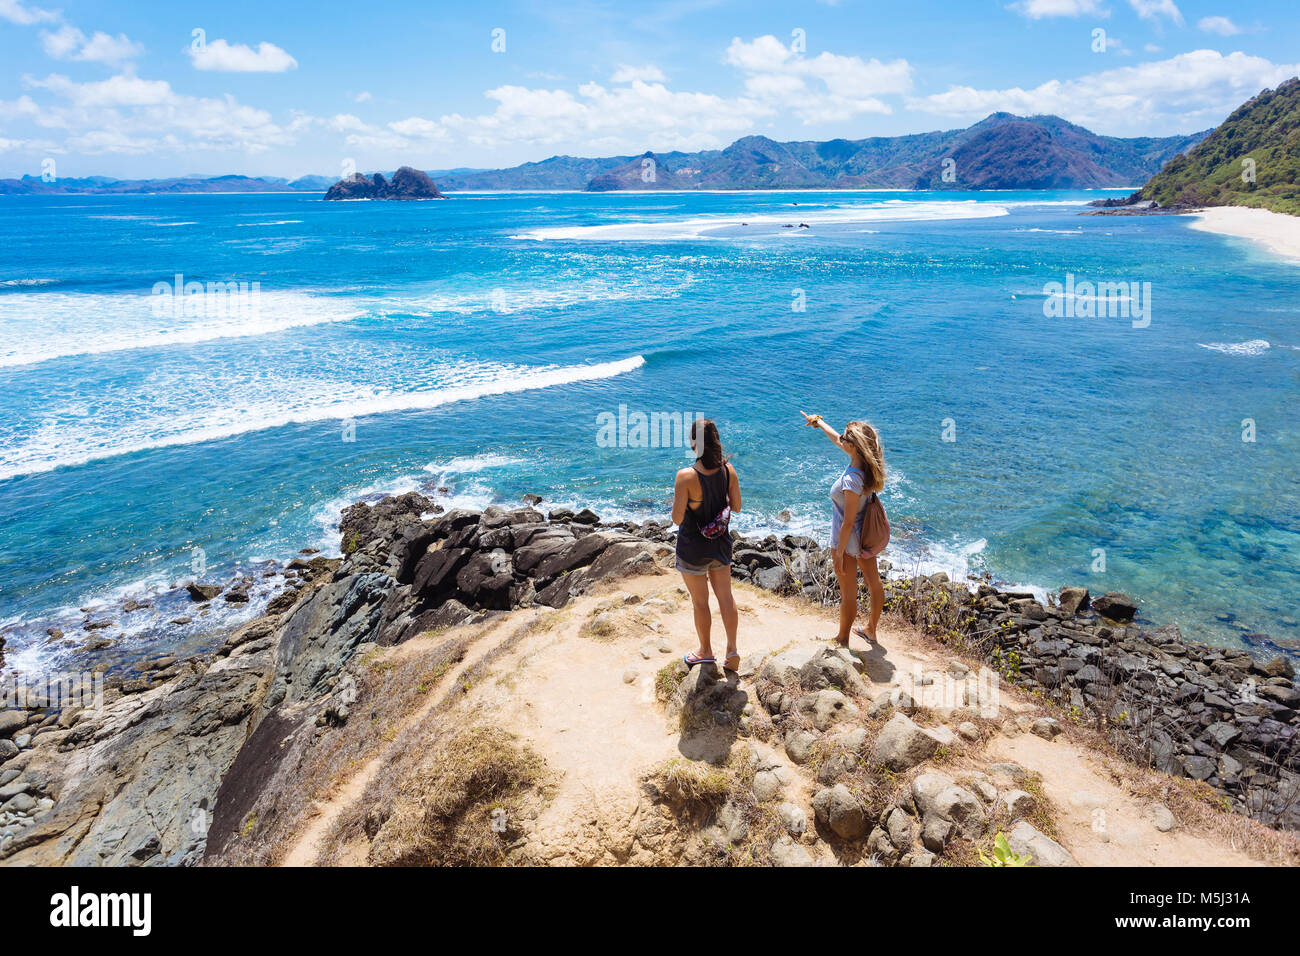 Indonesia, Lombok, two young women at ocean coastline - Stock Image